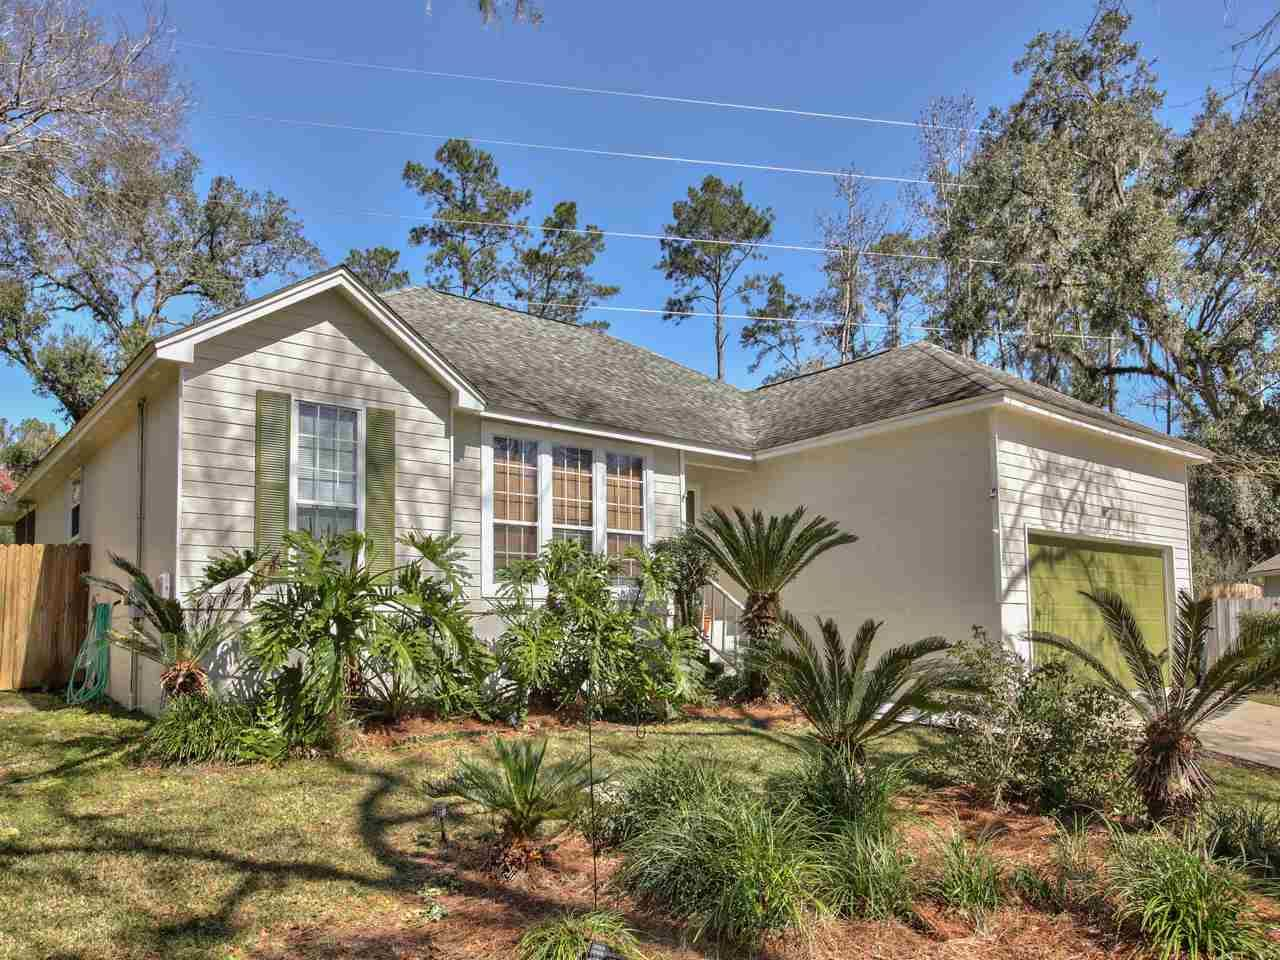 3648 HARPERS FERRY Court, Tallahassee, FL 32308 - MLS#: 329029